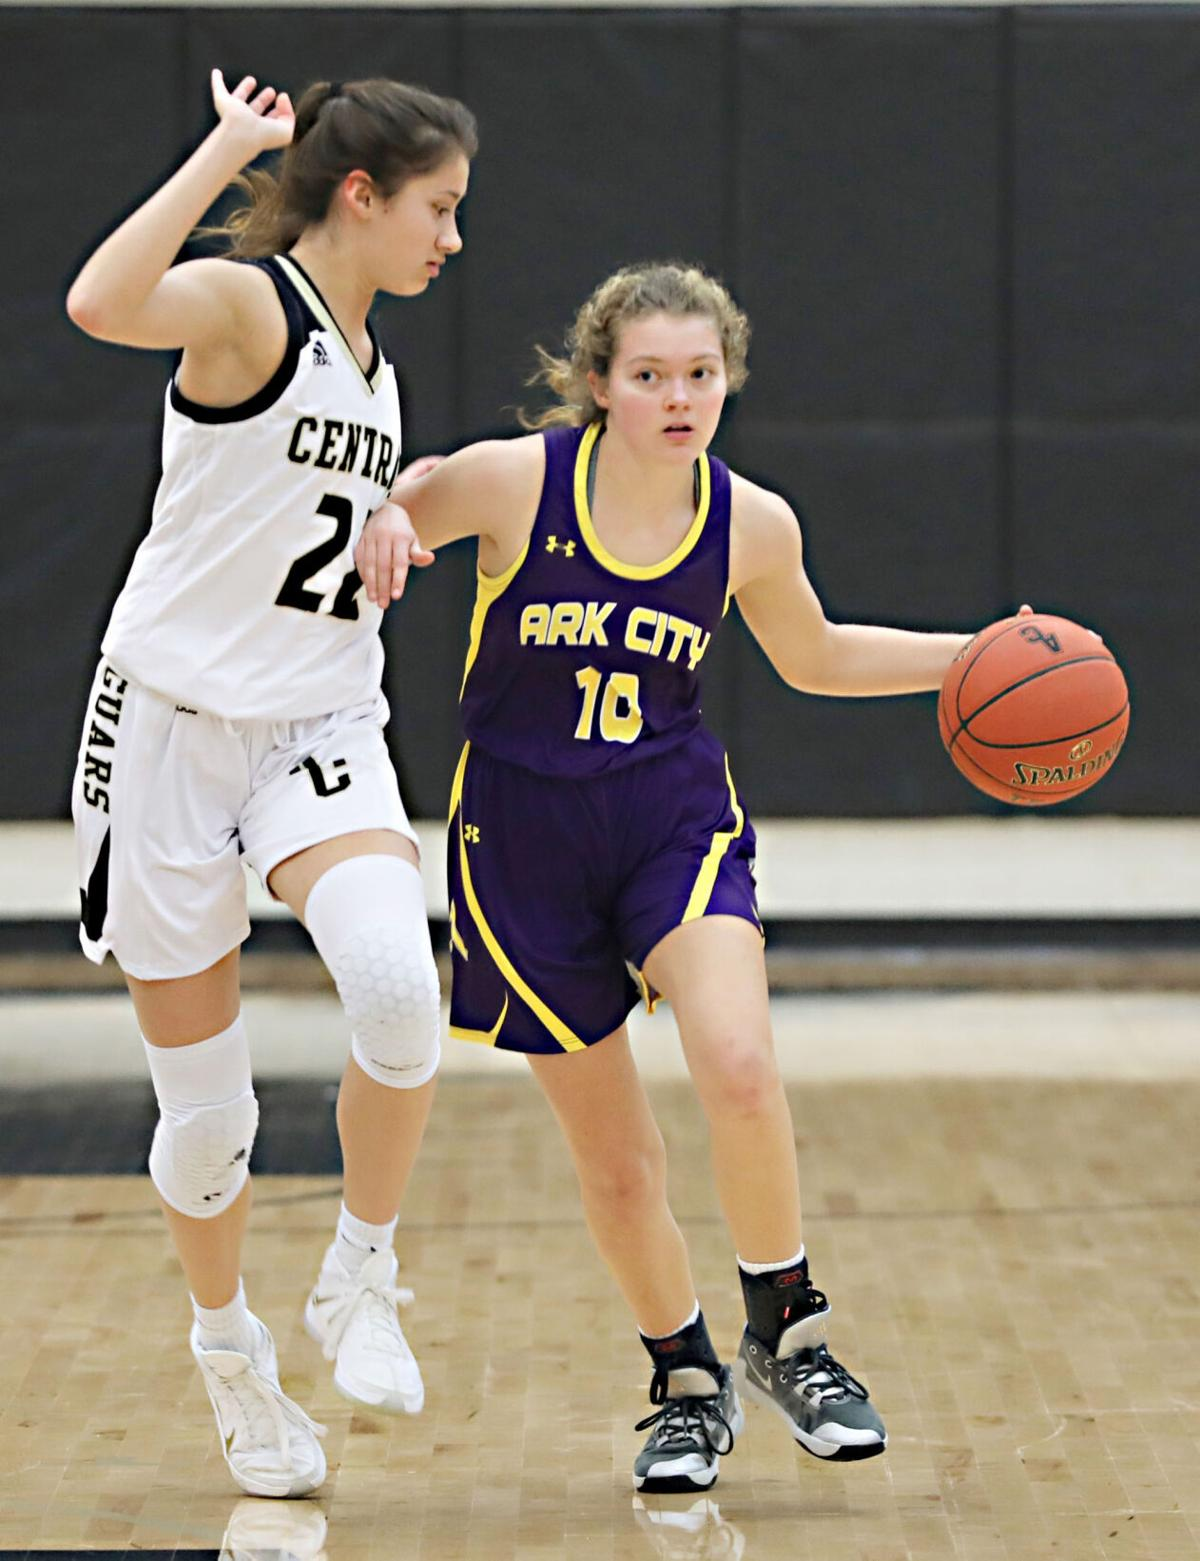 Bulldogs pull away at Andover Central, move record to 6-1